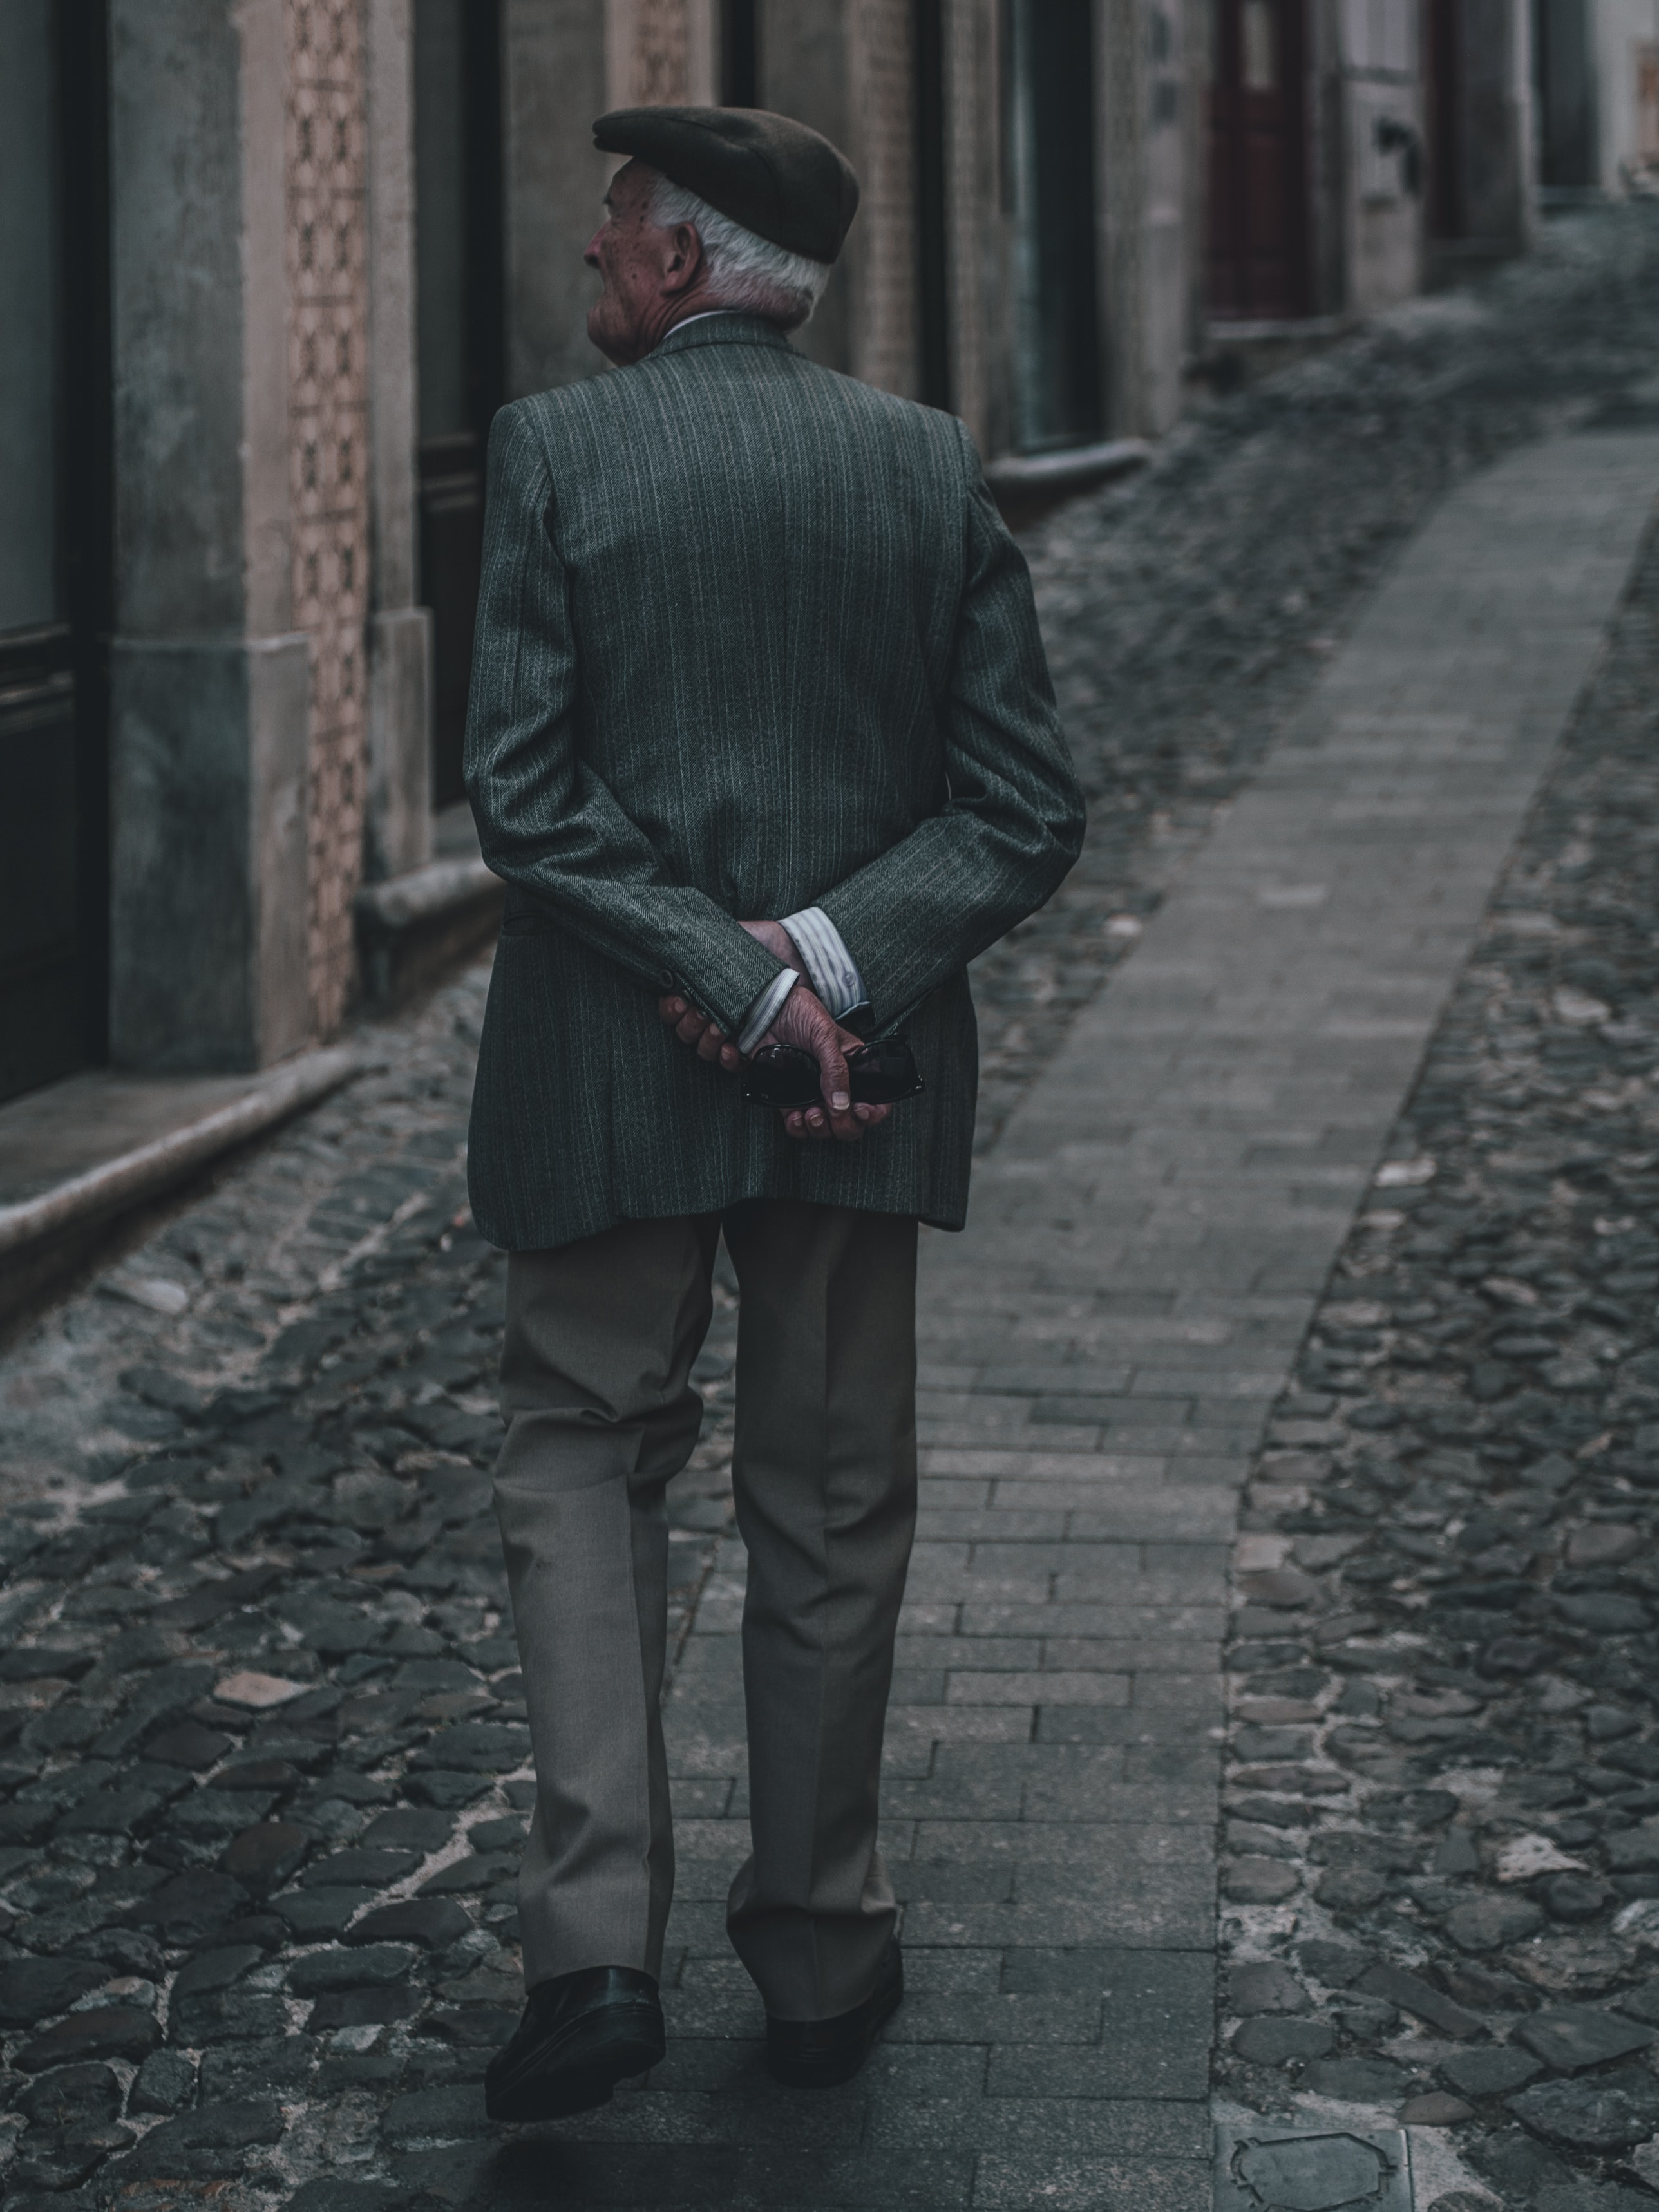 man in green coat walking on brick pavement in between concrete buildings during daytime